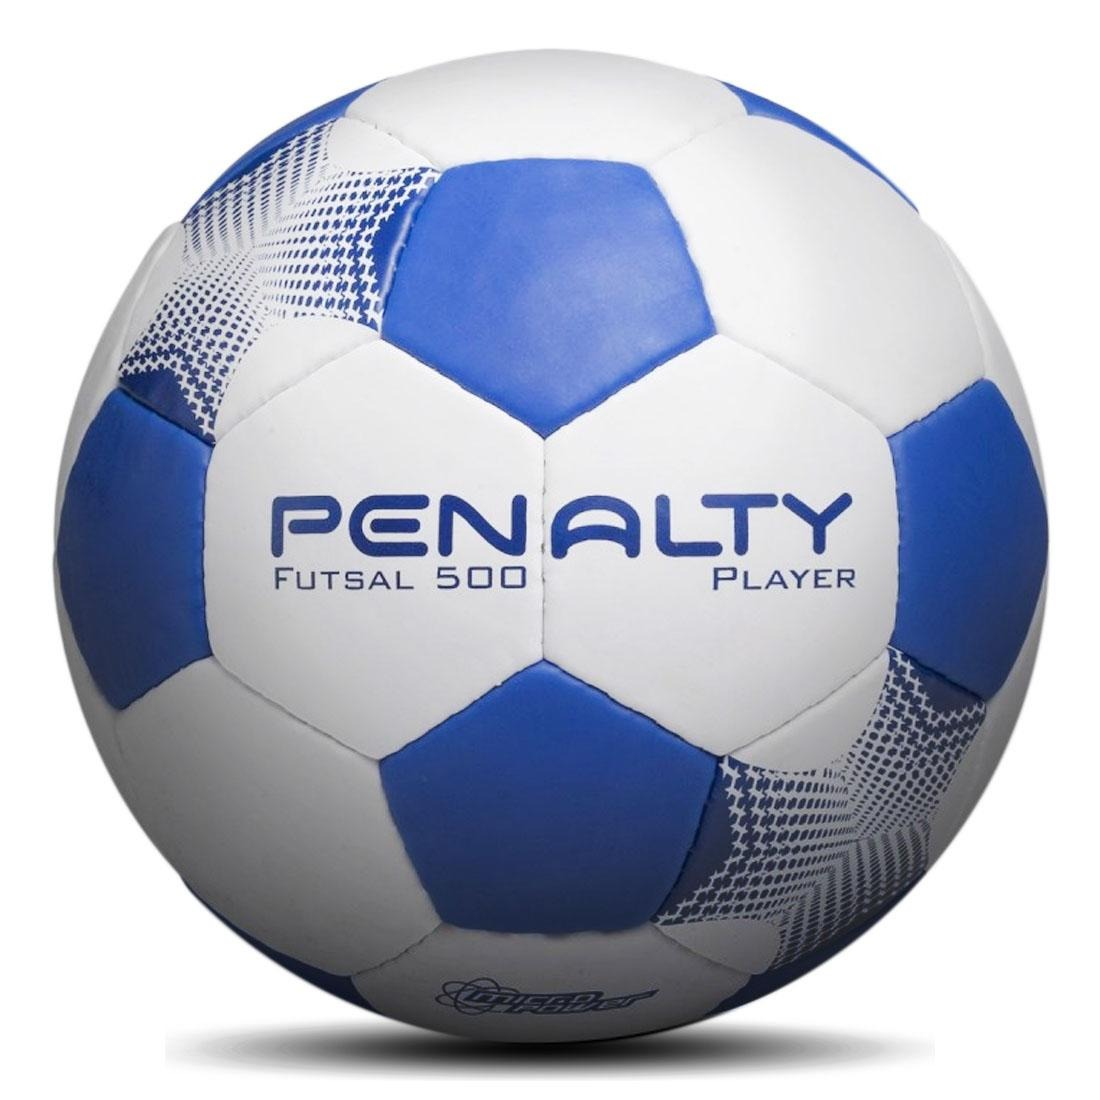 47ff5028c8 Bola Futsal Penalty Player Costurada - R  54